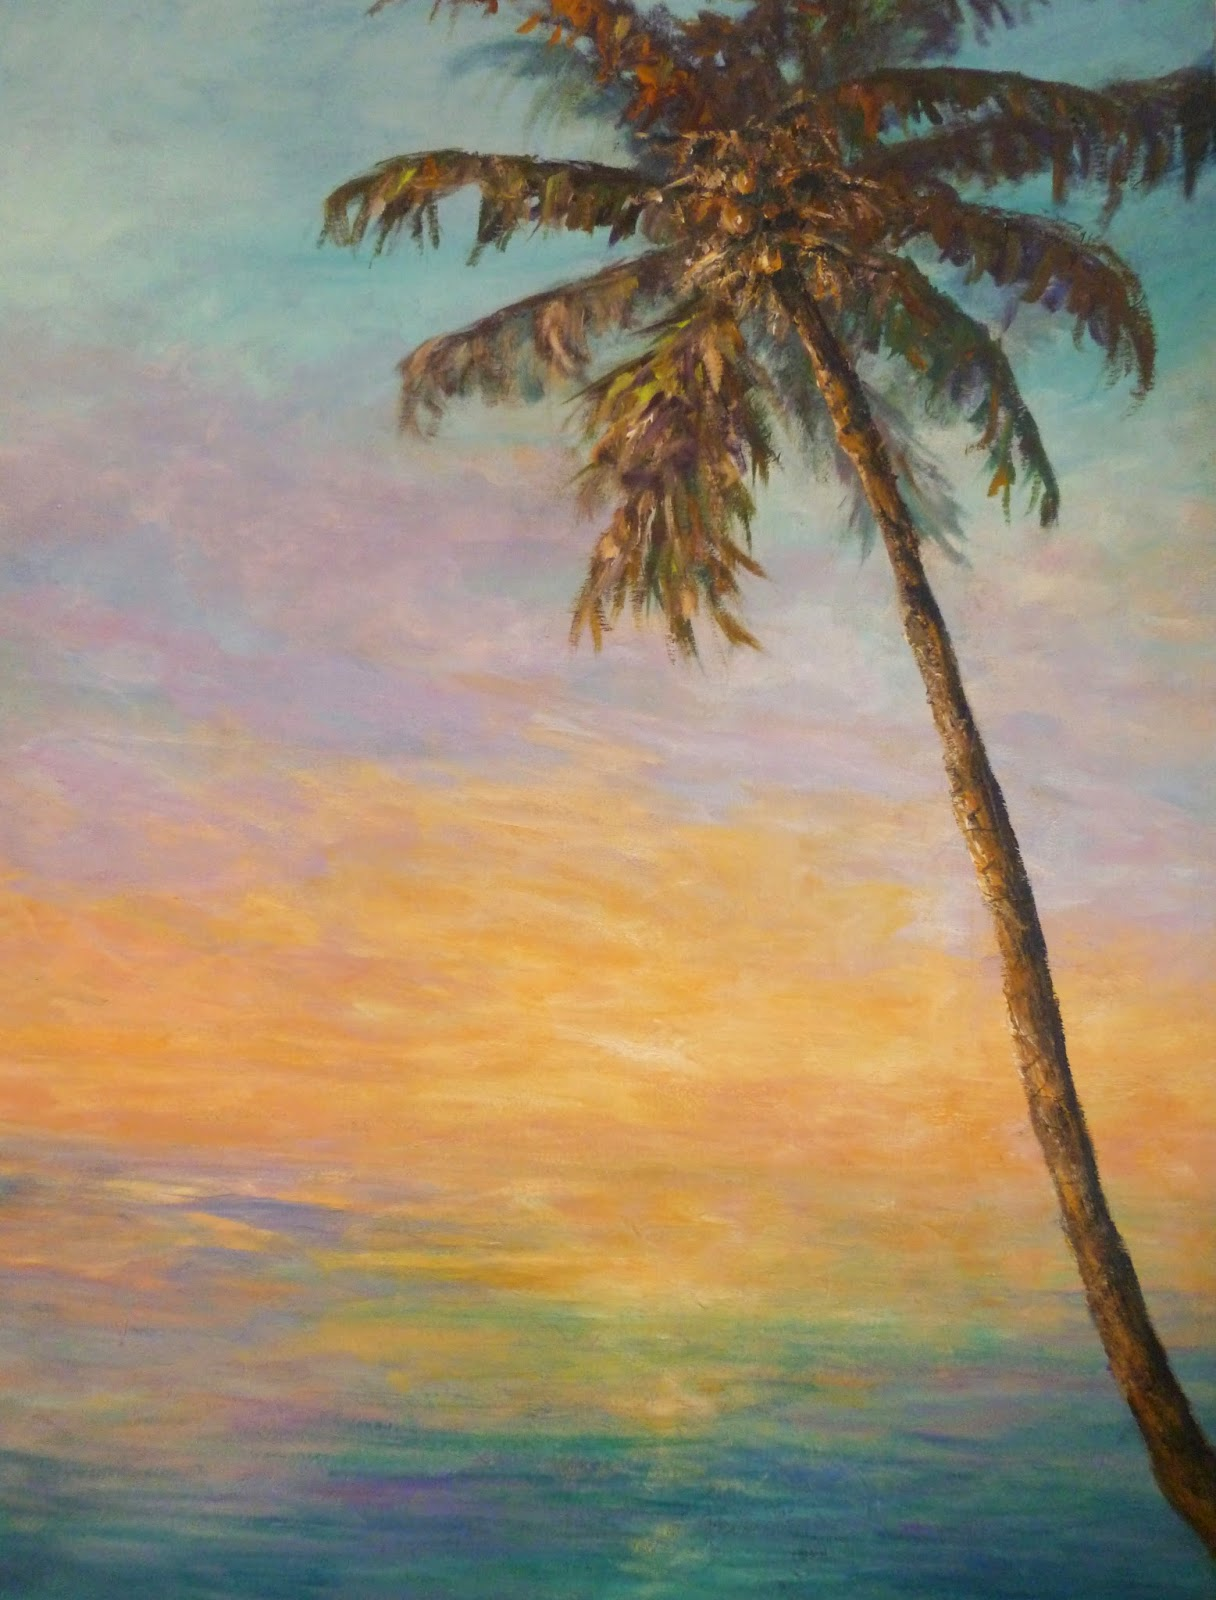 Painting of a palm tree with colorful sunset